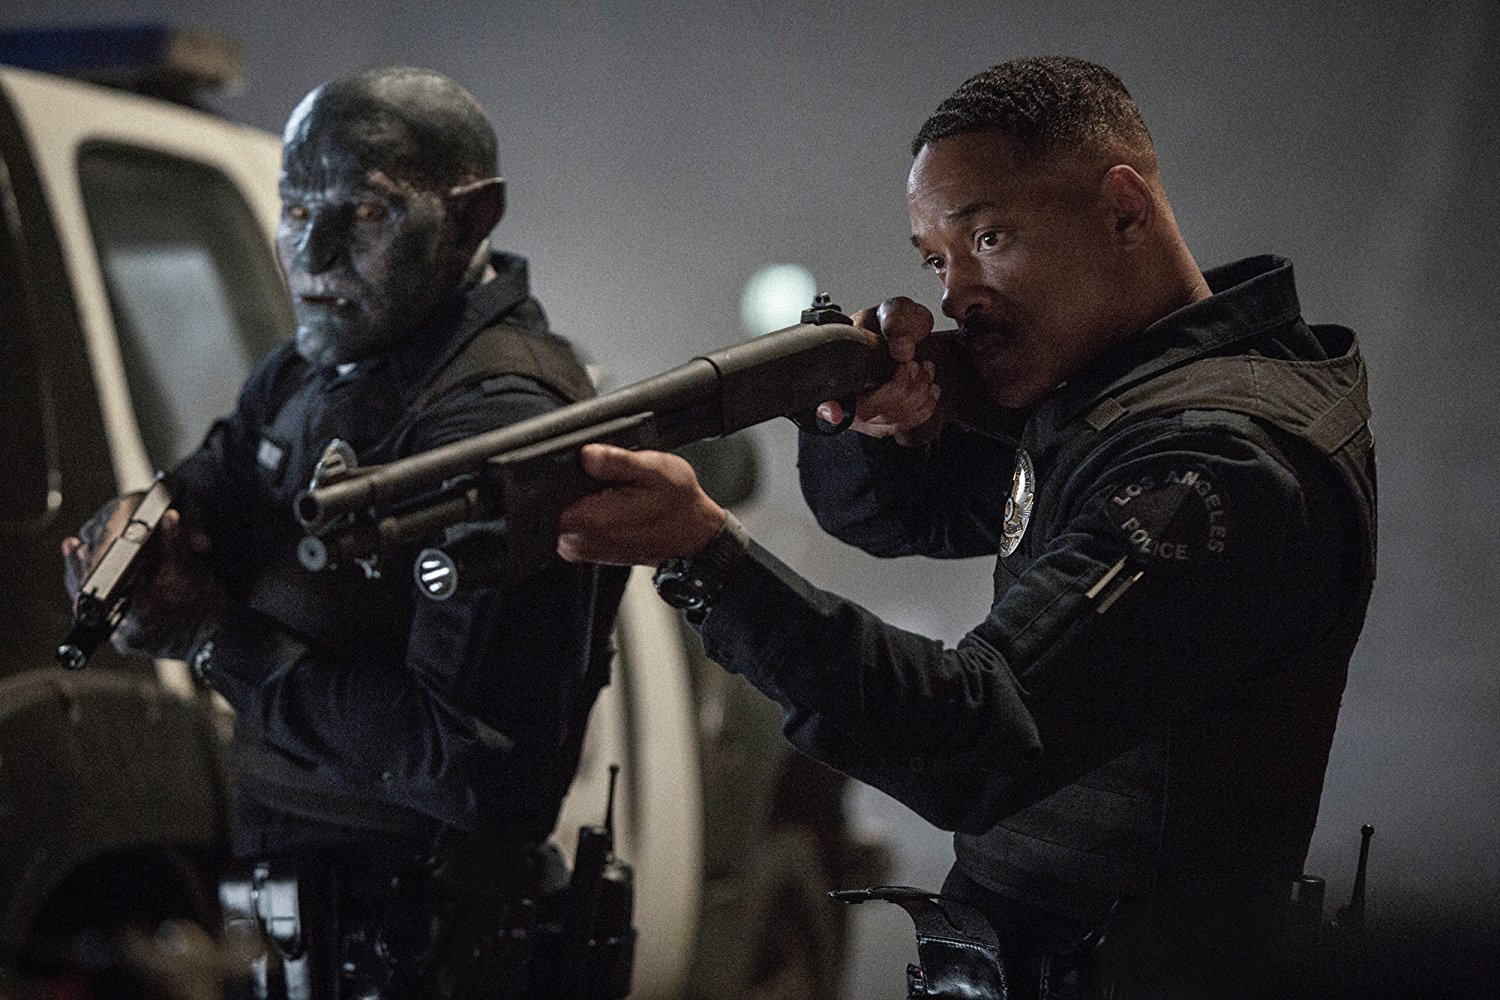 La super-production Netflix avec Will Smith — Bright